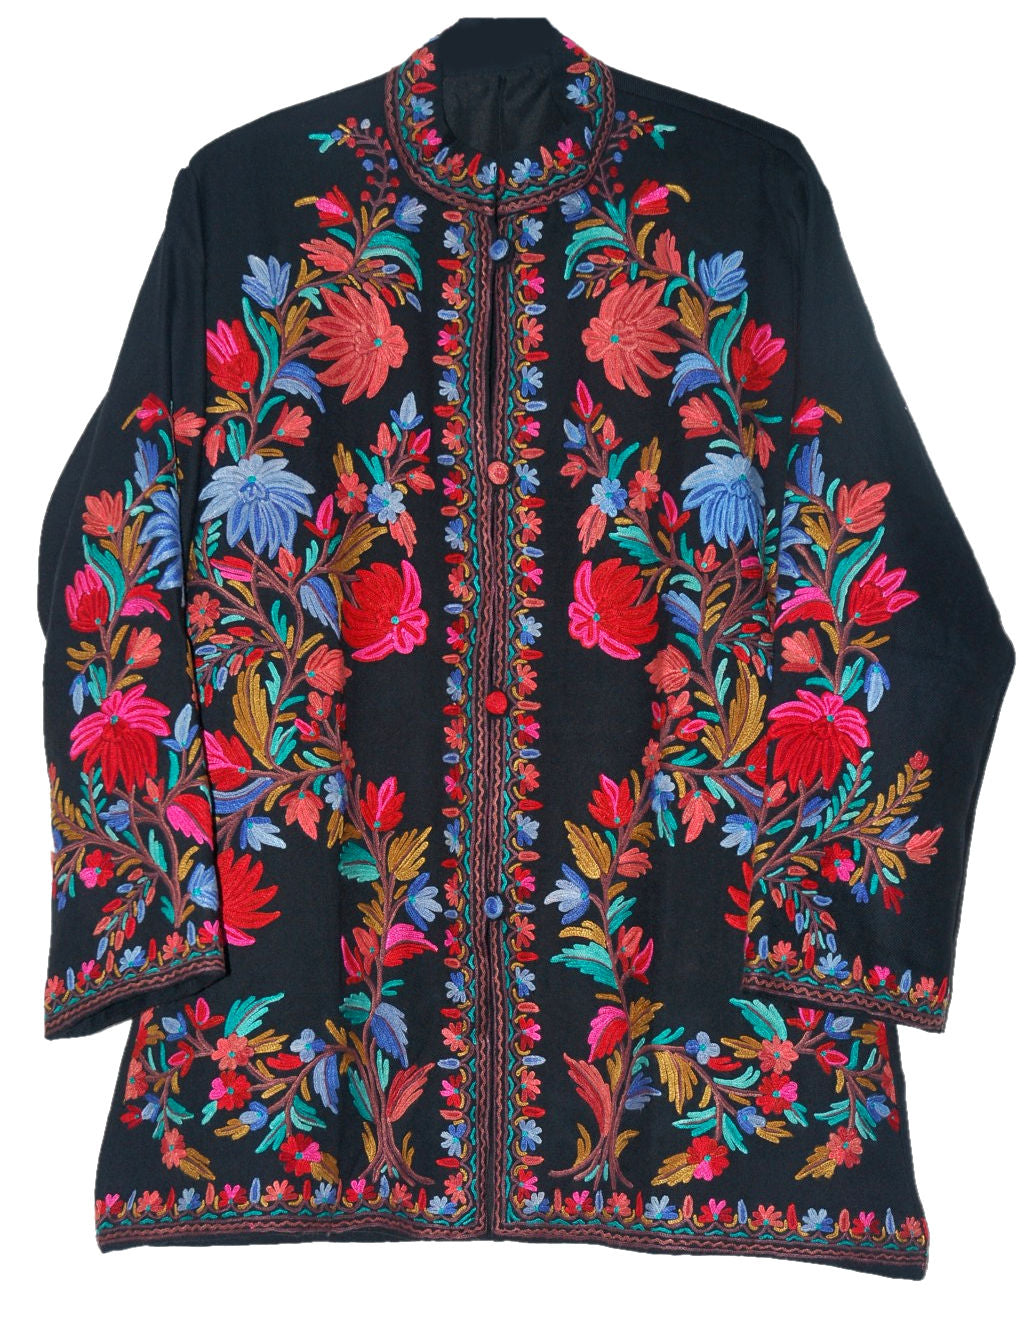 Embroidered Woolen Jacket Black, Multicolor Embroidery #AO-008